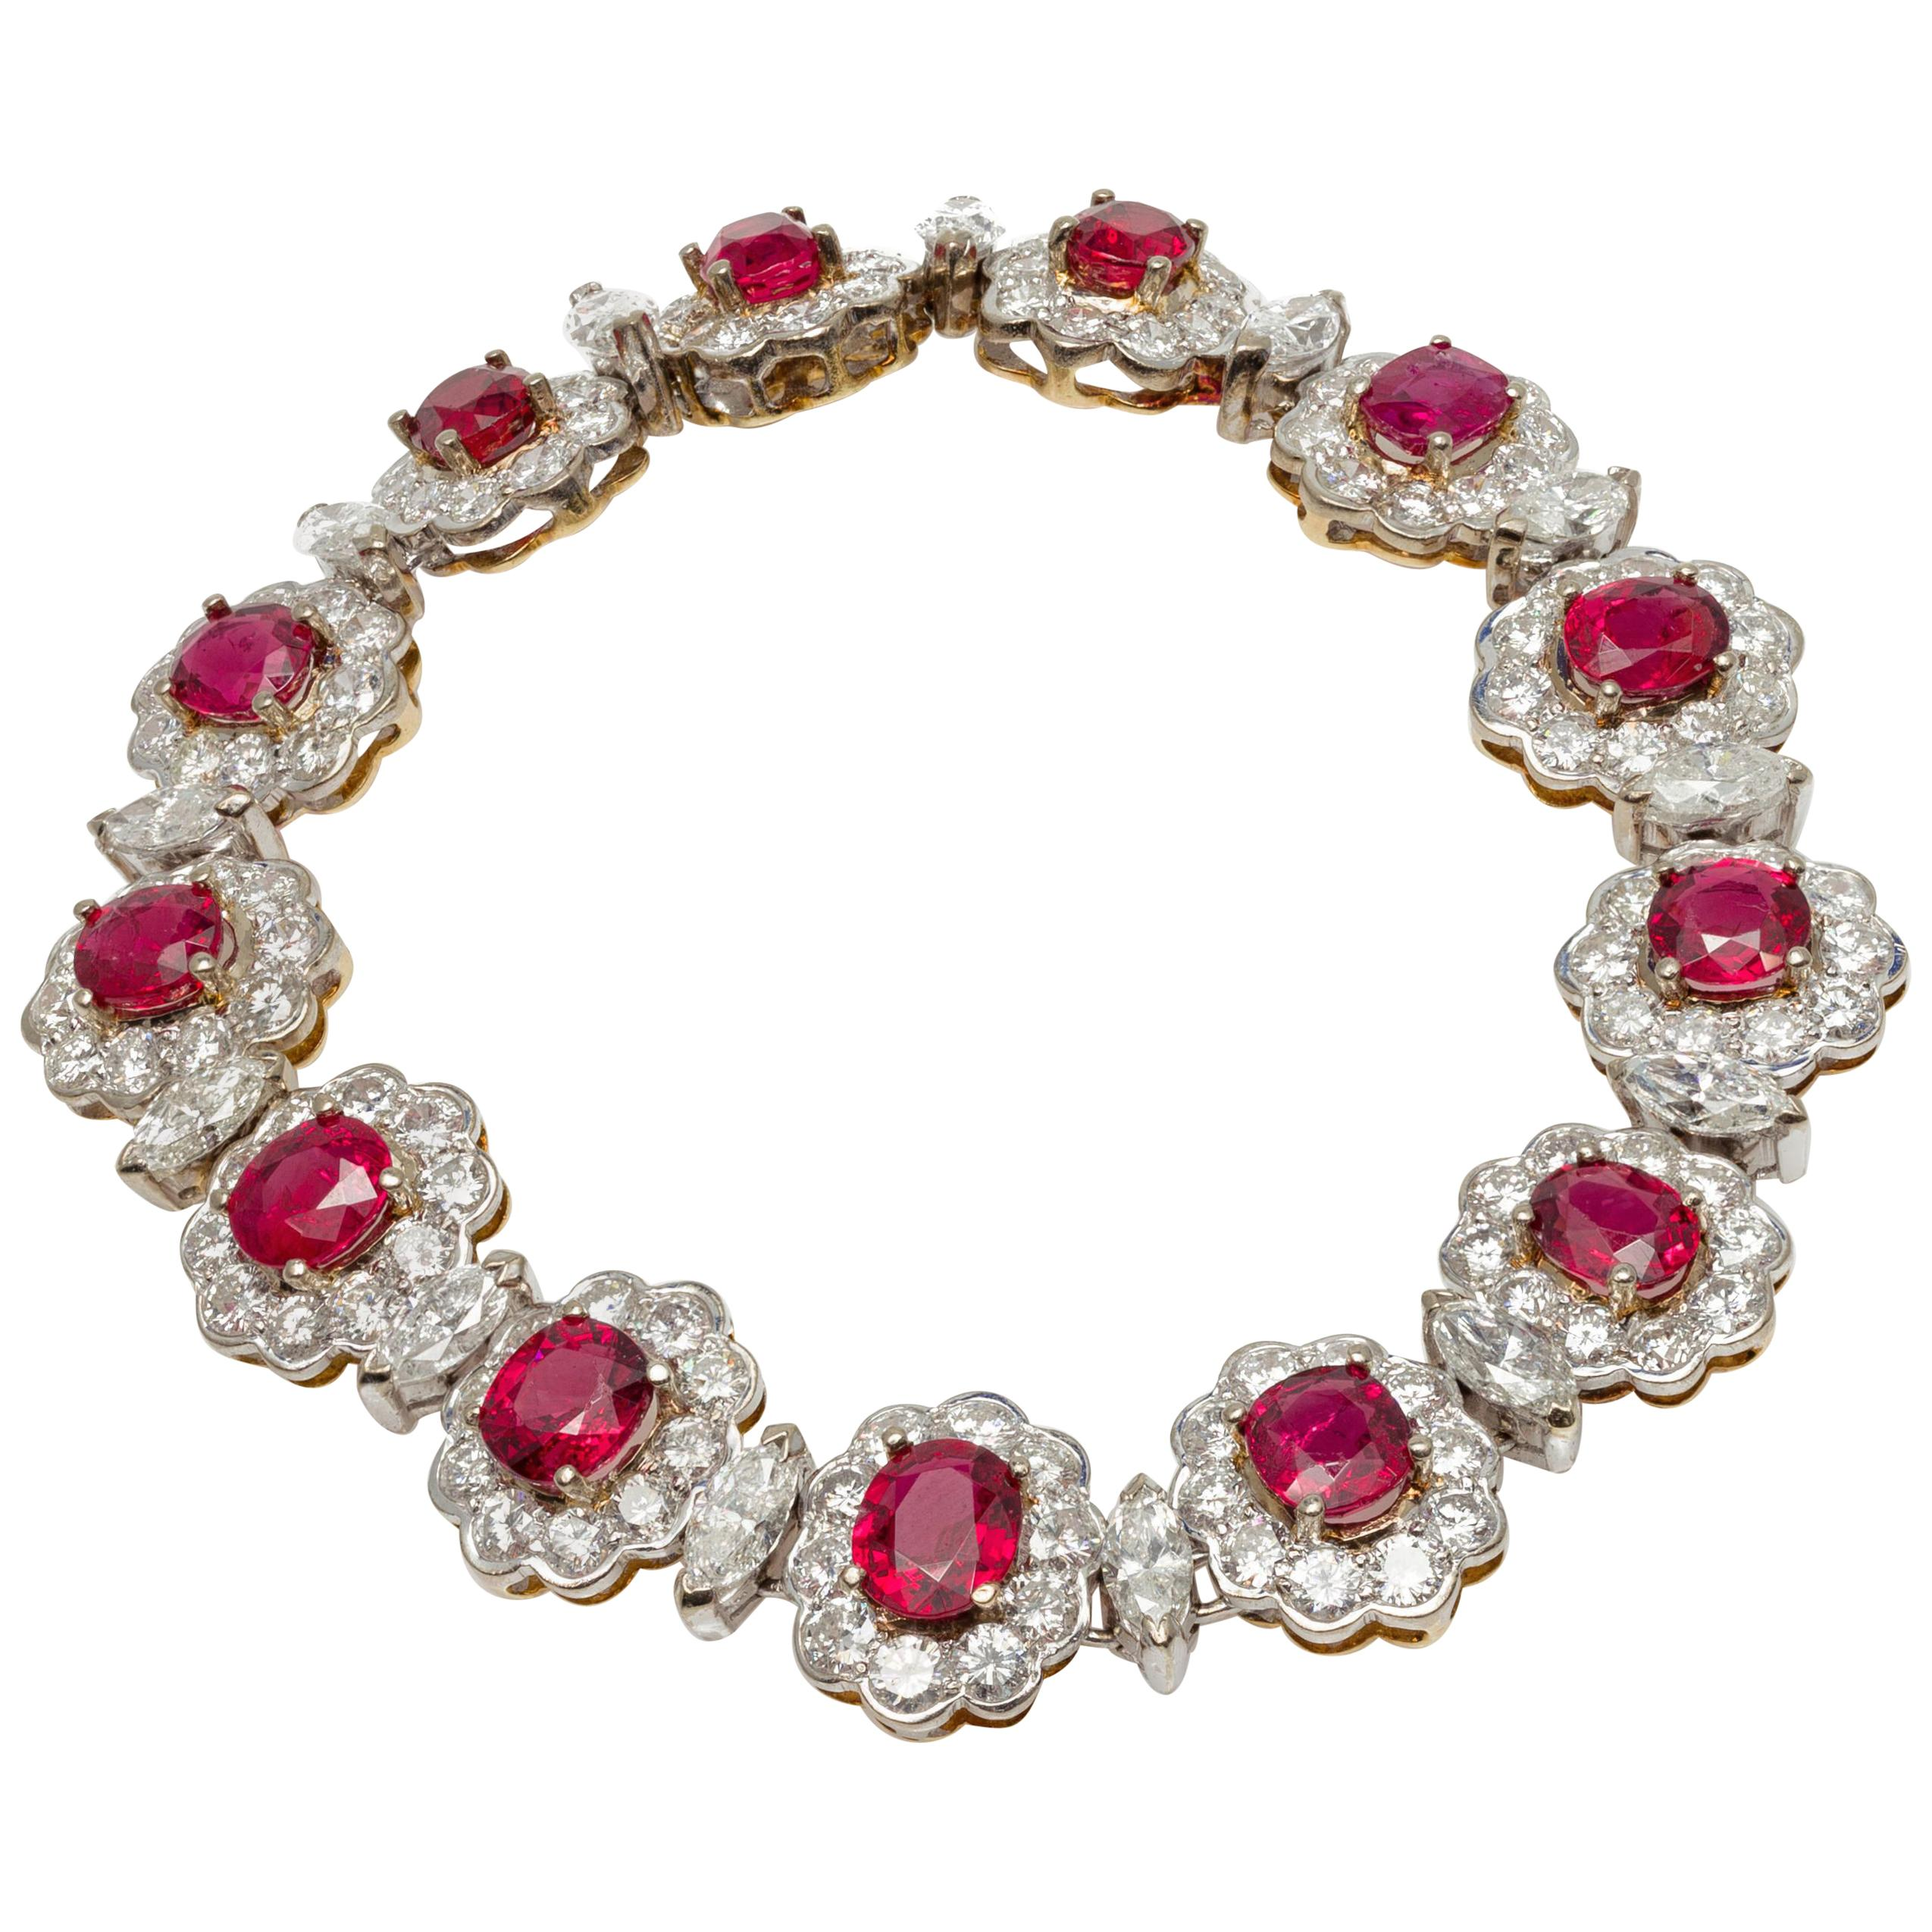 10.60 Carat Diamond and 10.25 Carat Spinel Bracelet in 18K Yellow and White Gold